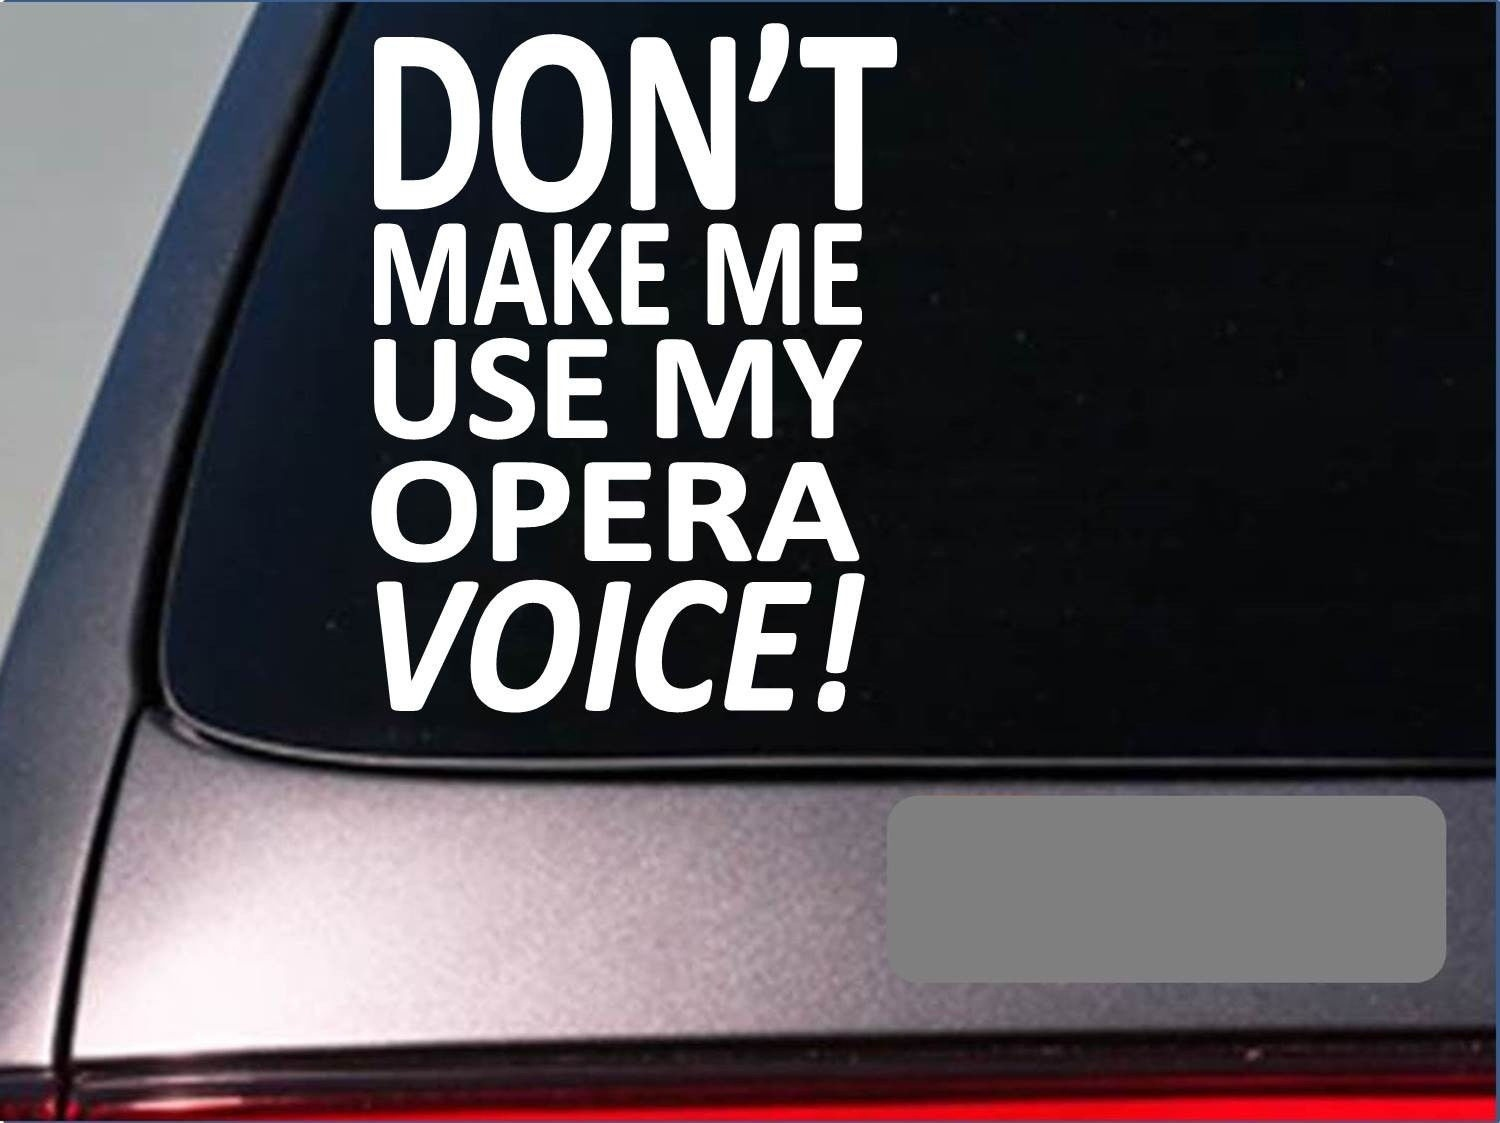 Don't make me use my opera voice singing music microphone sticker decal window Sticker image